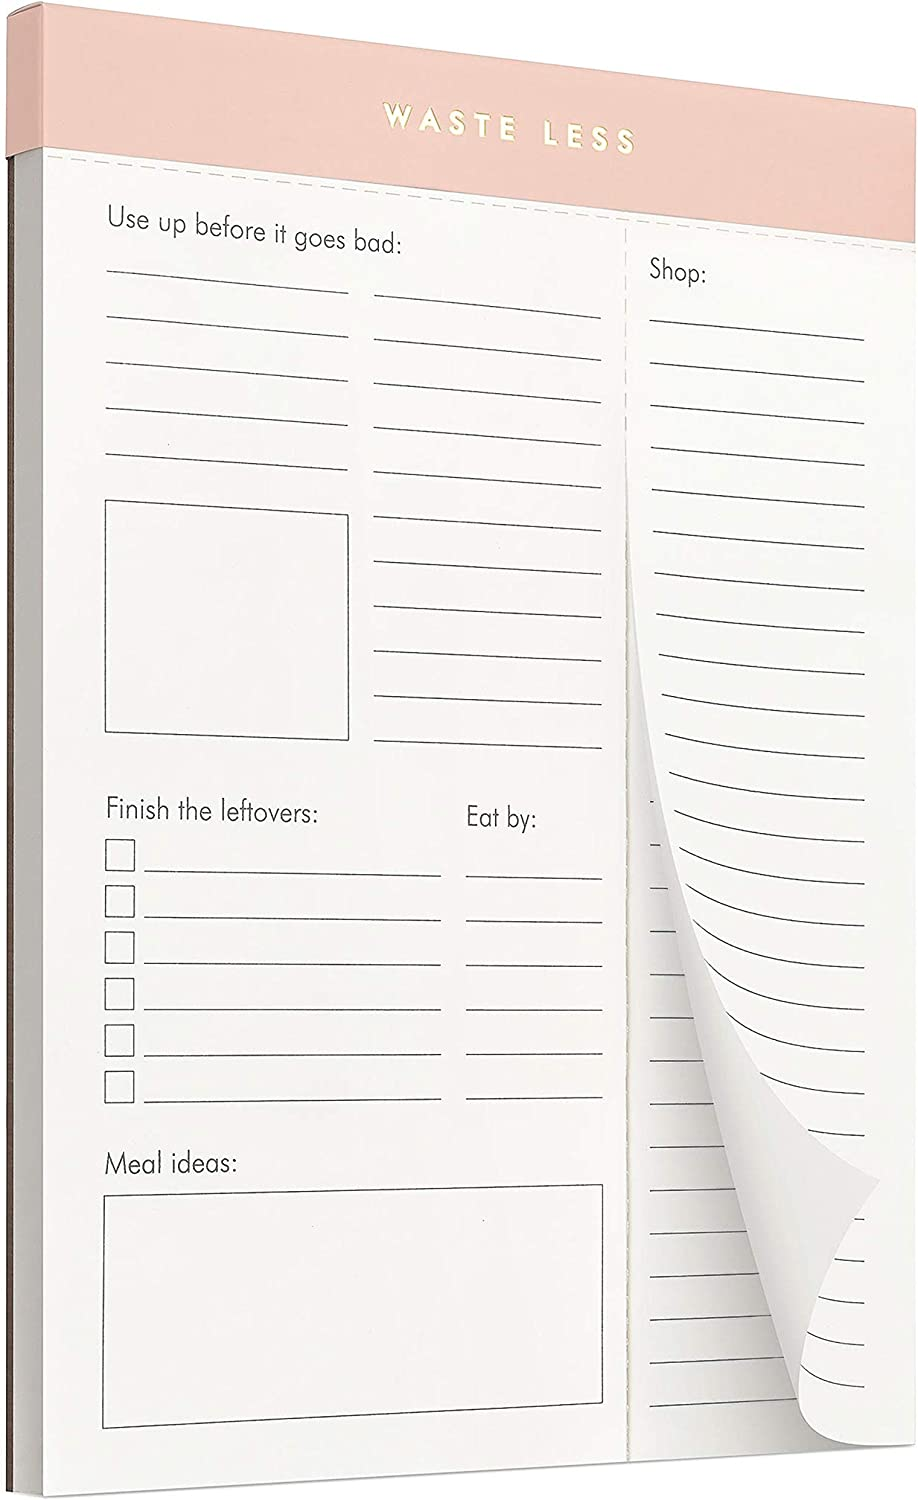 Waste Less - Track Perishables - Reduce Food Waste. Magnetic Meal Planner Pad & Grocery List, 52 Tear-Off Pages (8 x 6 in)